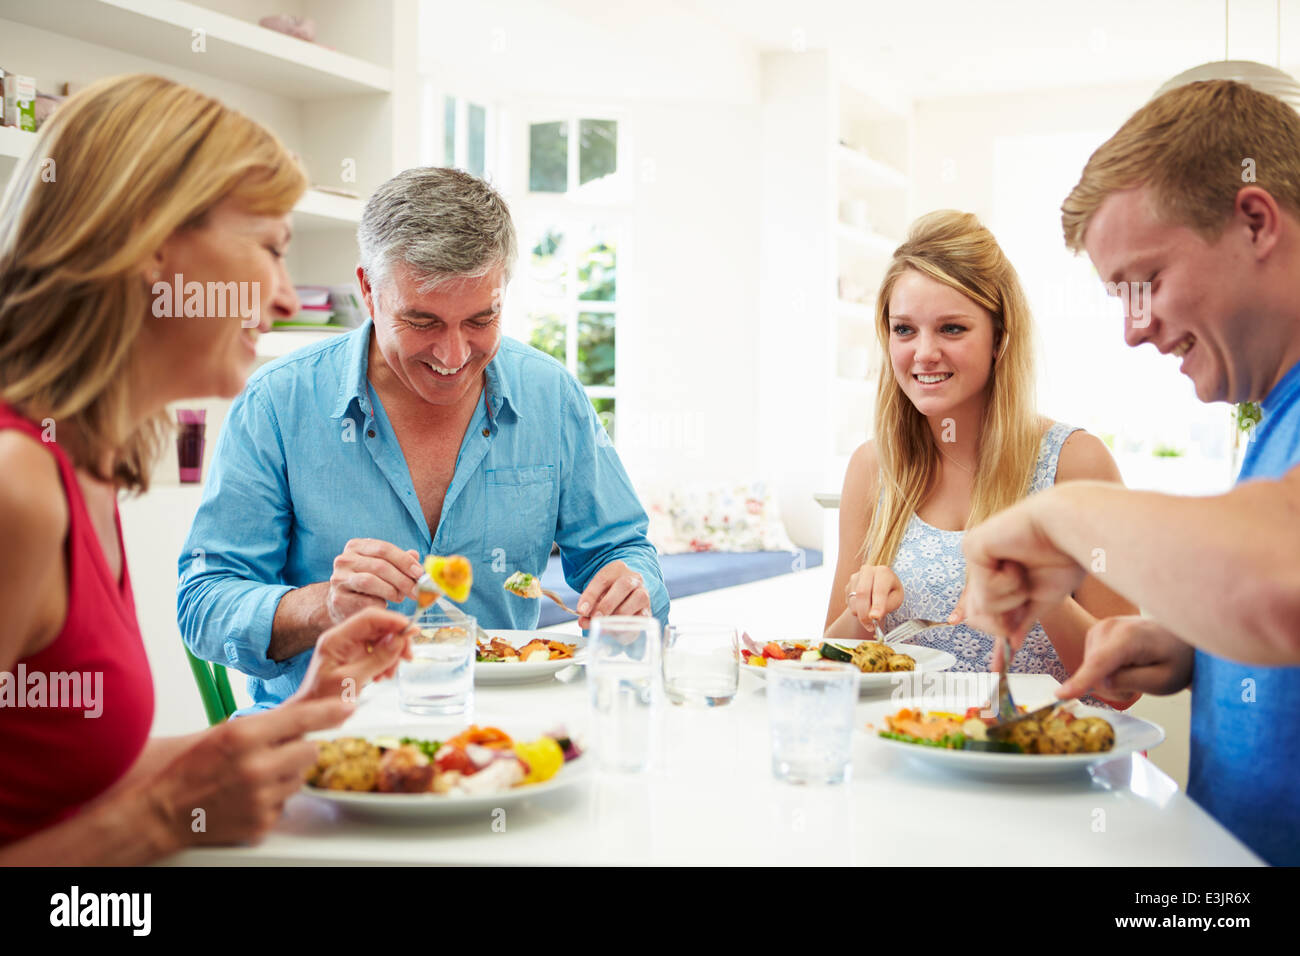 Family With Teenage Children Eating Meal At Home Together - Stock Image